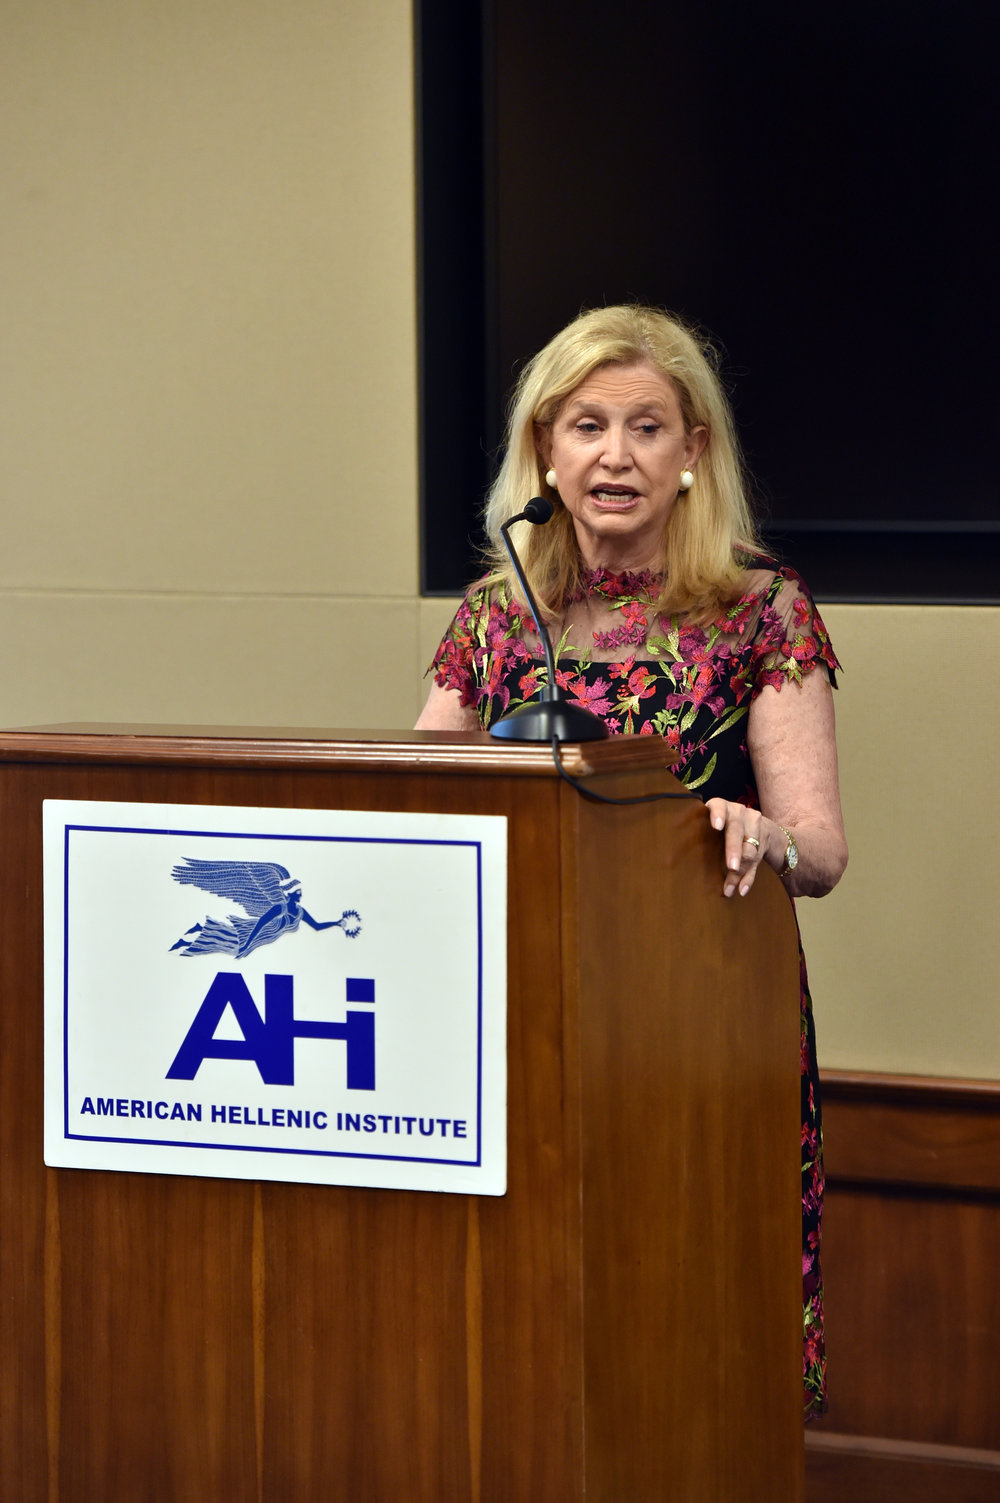 Rep. Carolyn Maloney (D-NY), Co-Chair of the Hellenic Caucus